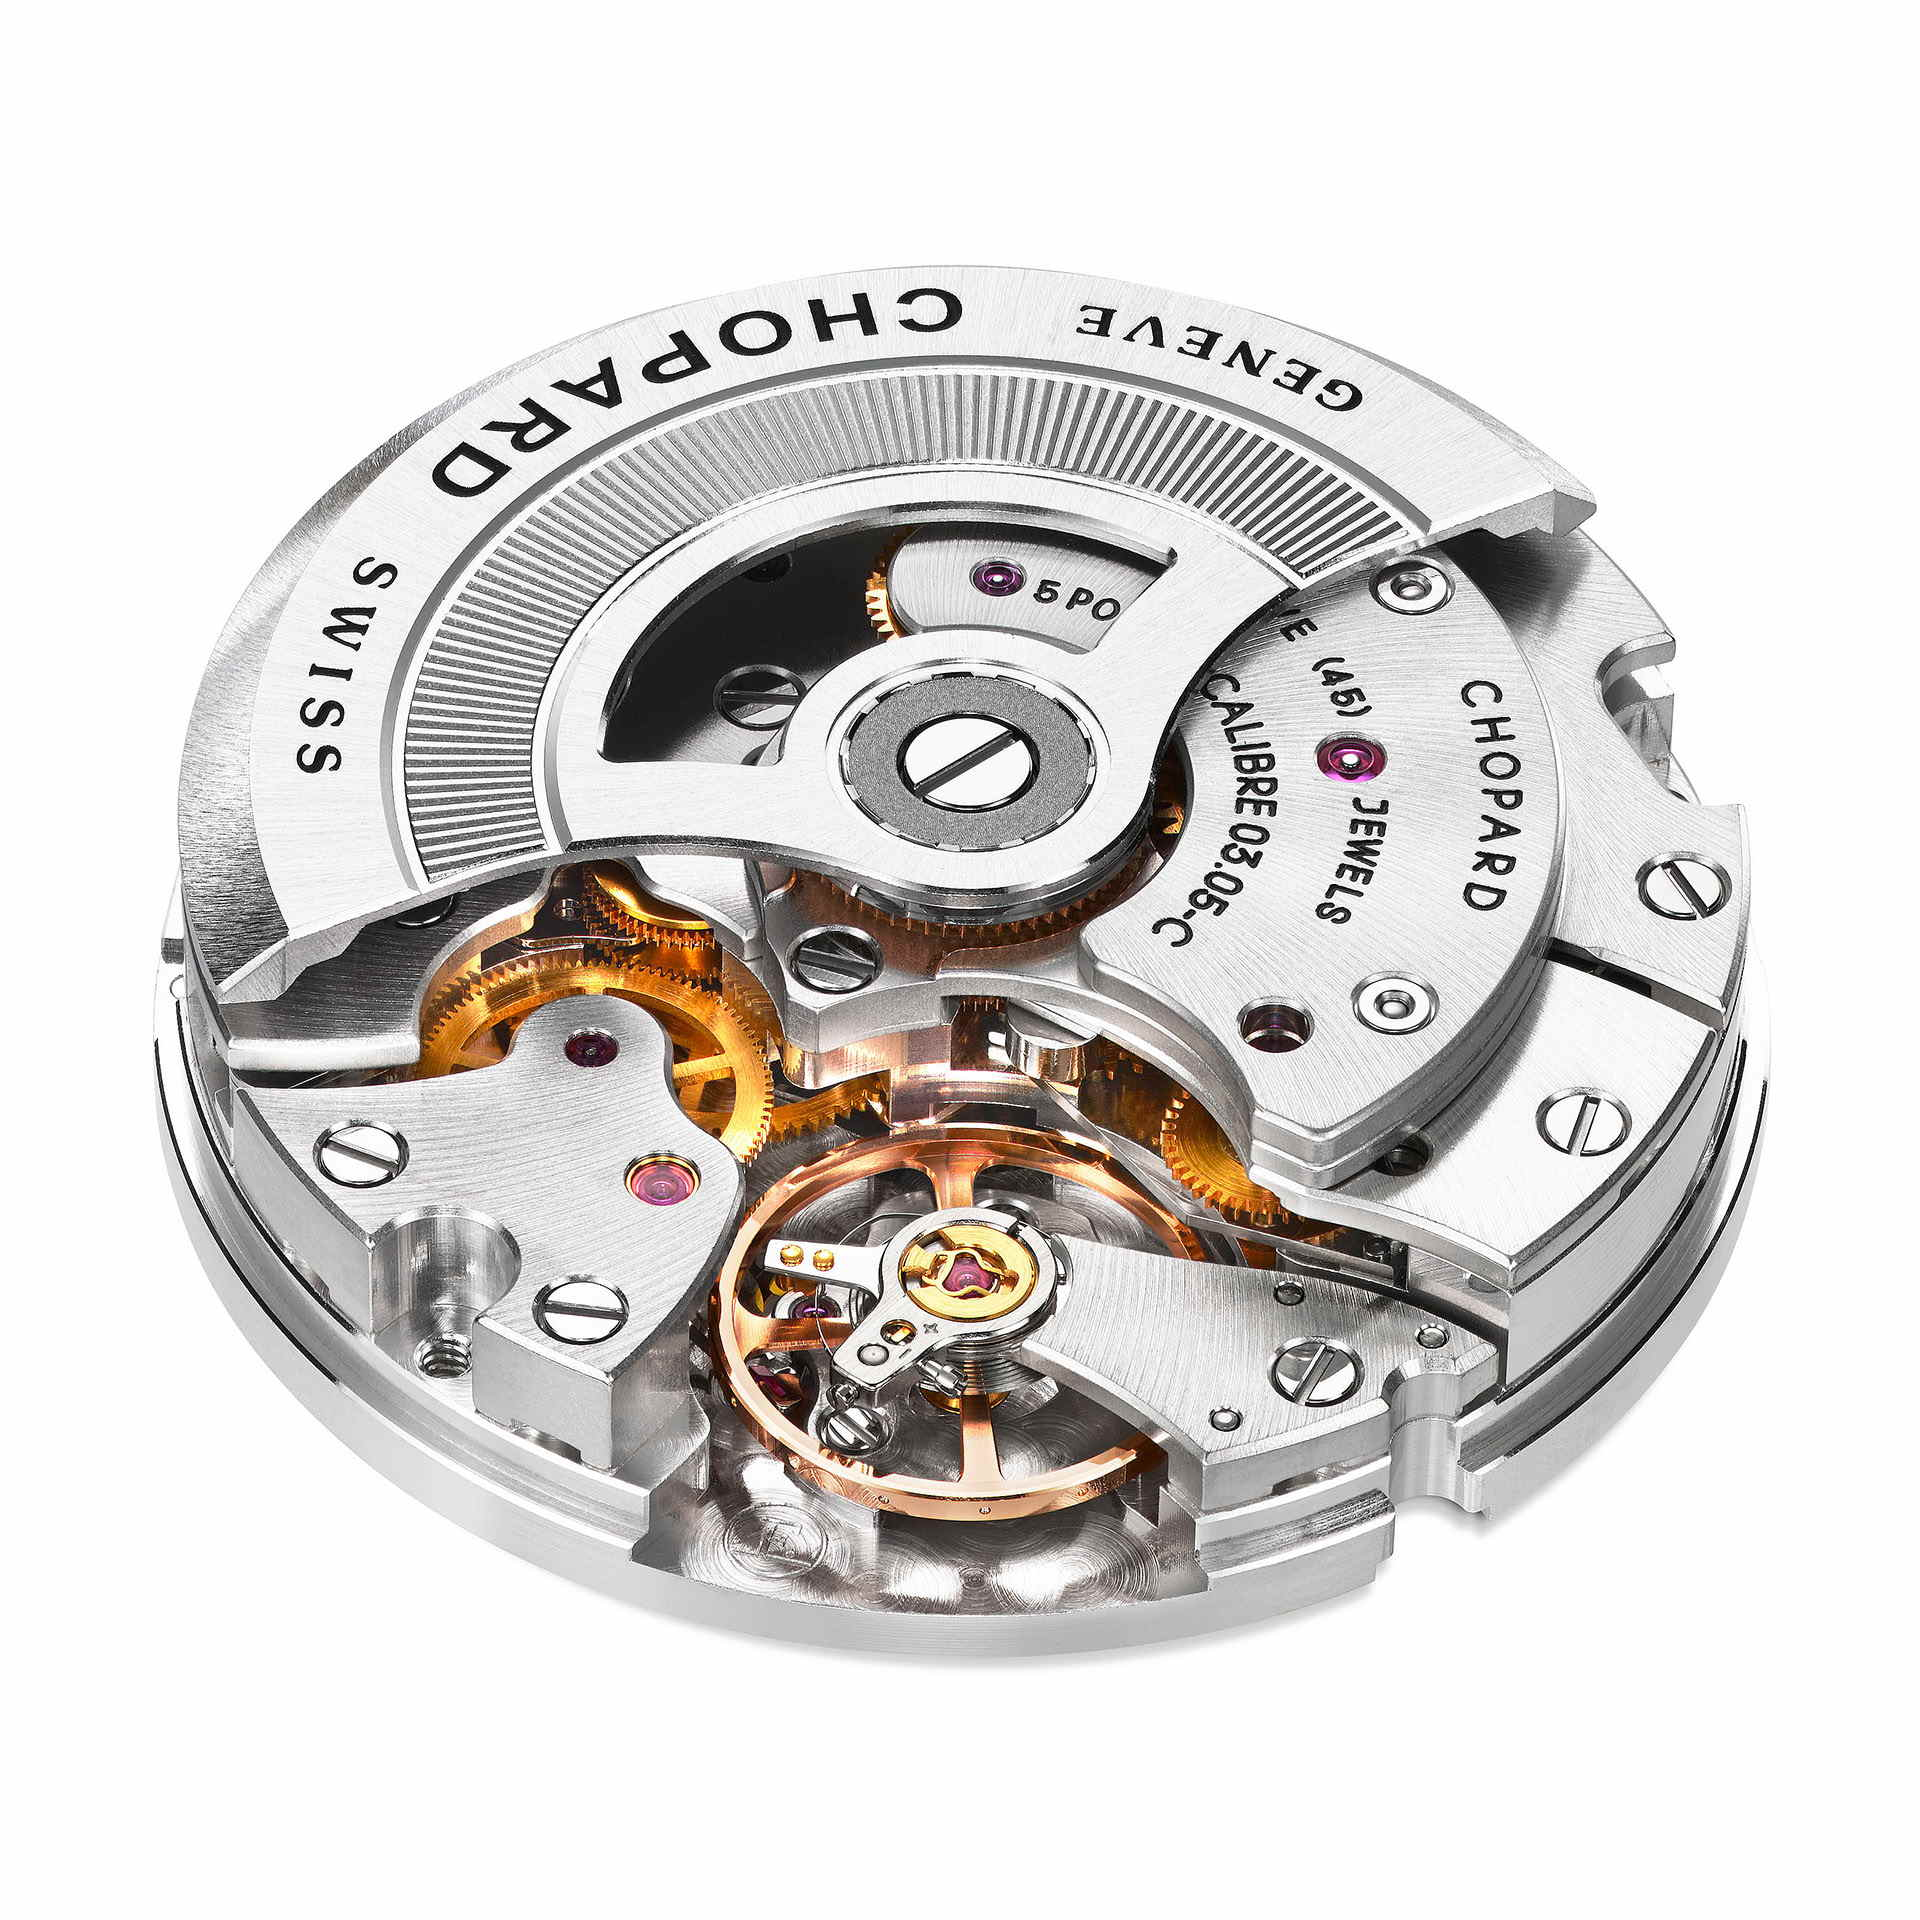 Chopard Alpine Eagle XL 03.05-C